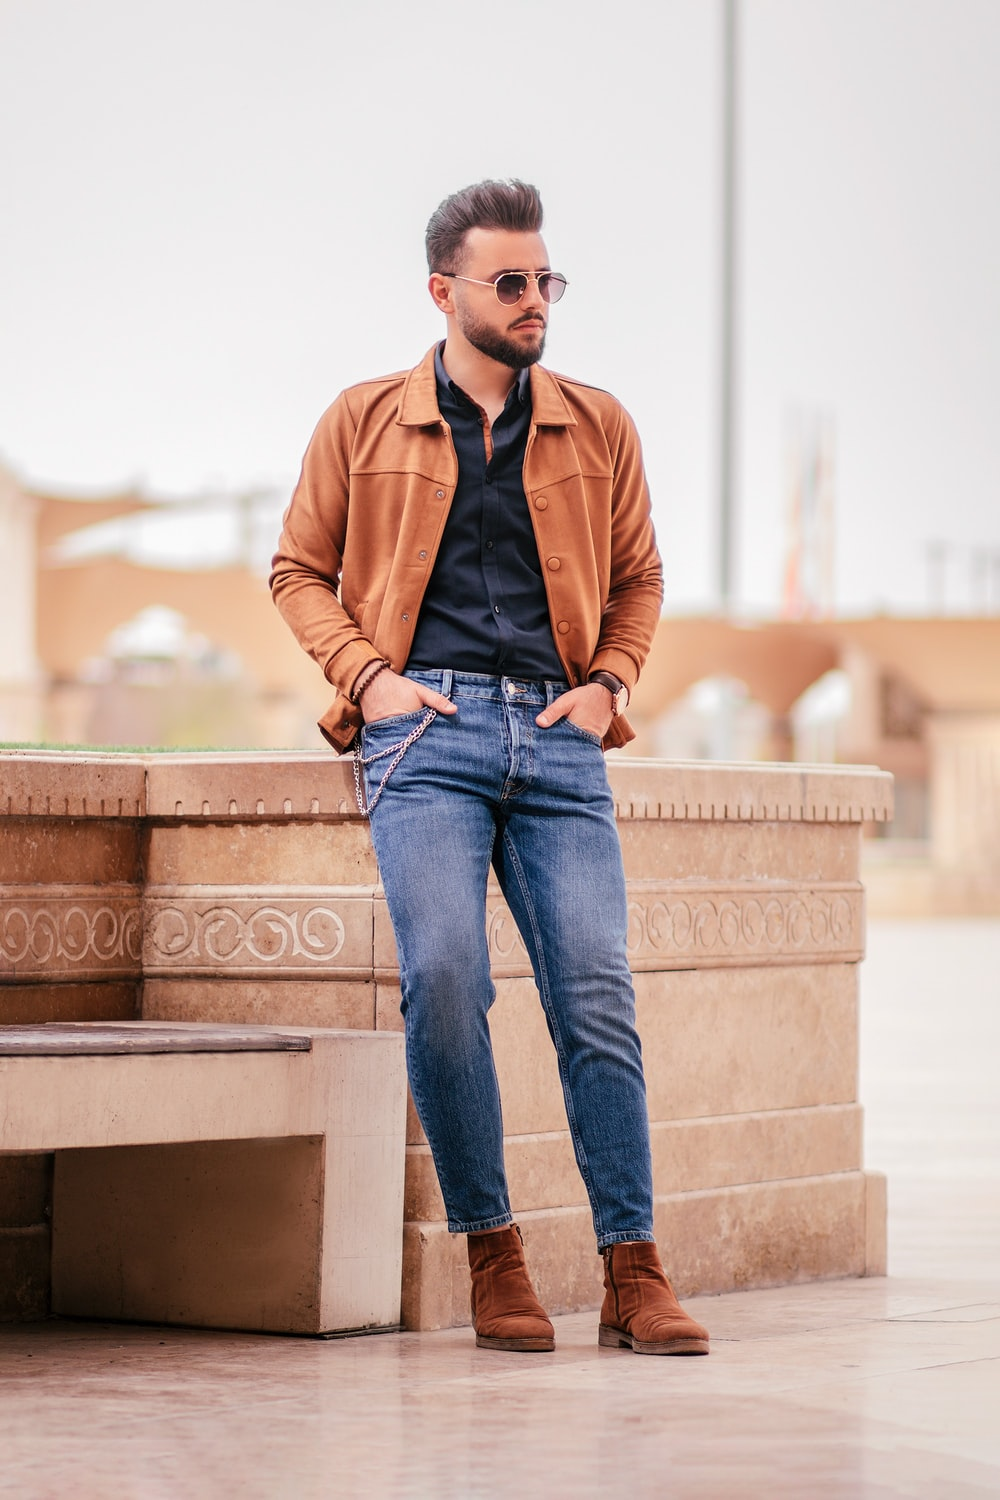 man in brown jacket and blue denim jeans sitting on brown concrete bench during daytime